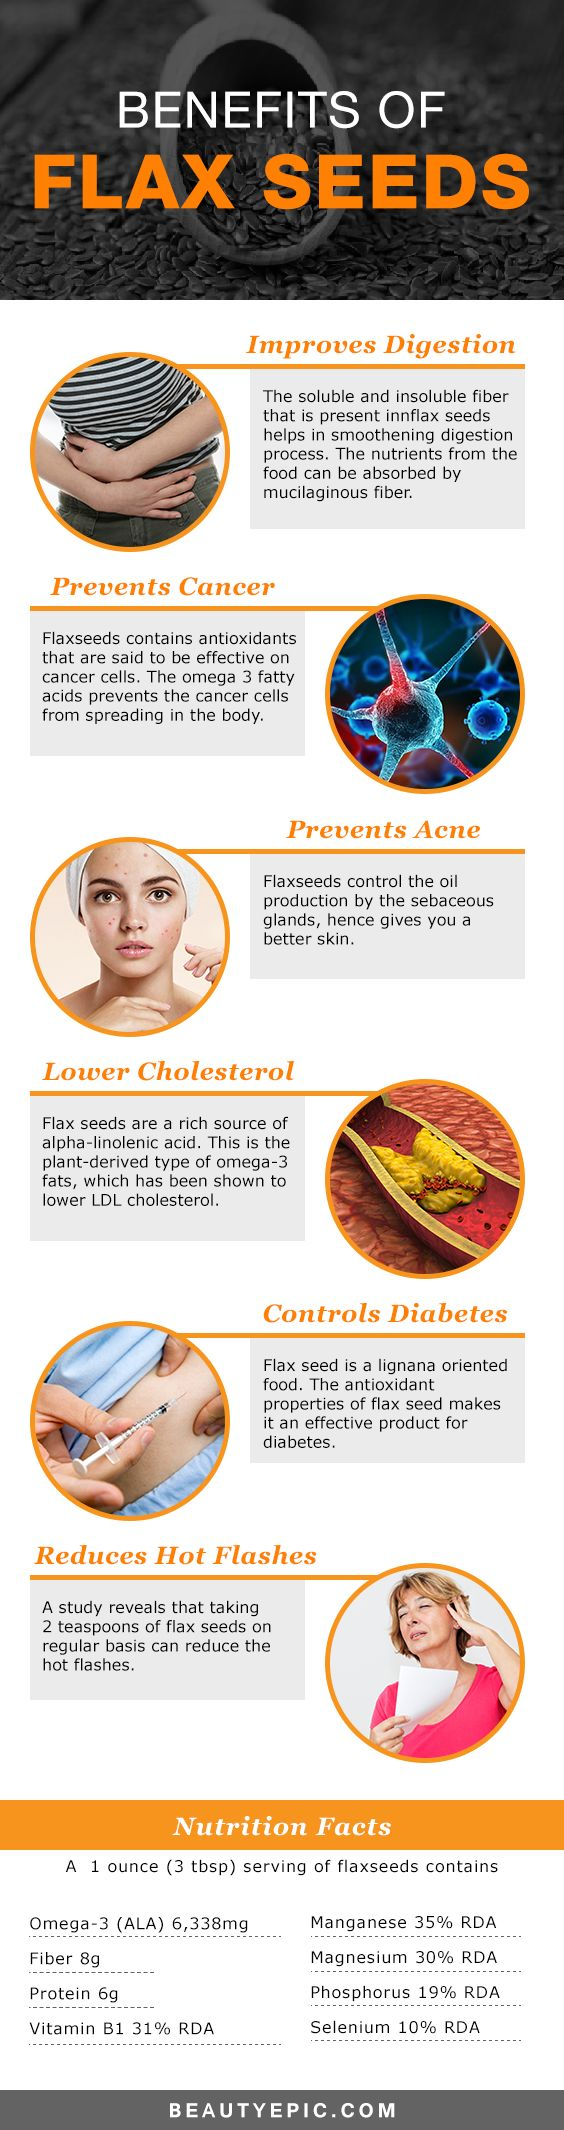 Benefits of Flax Seeds For Skin, Hair and Health